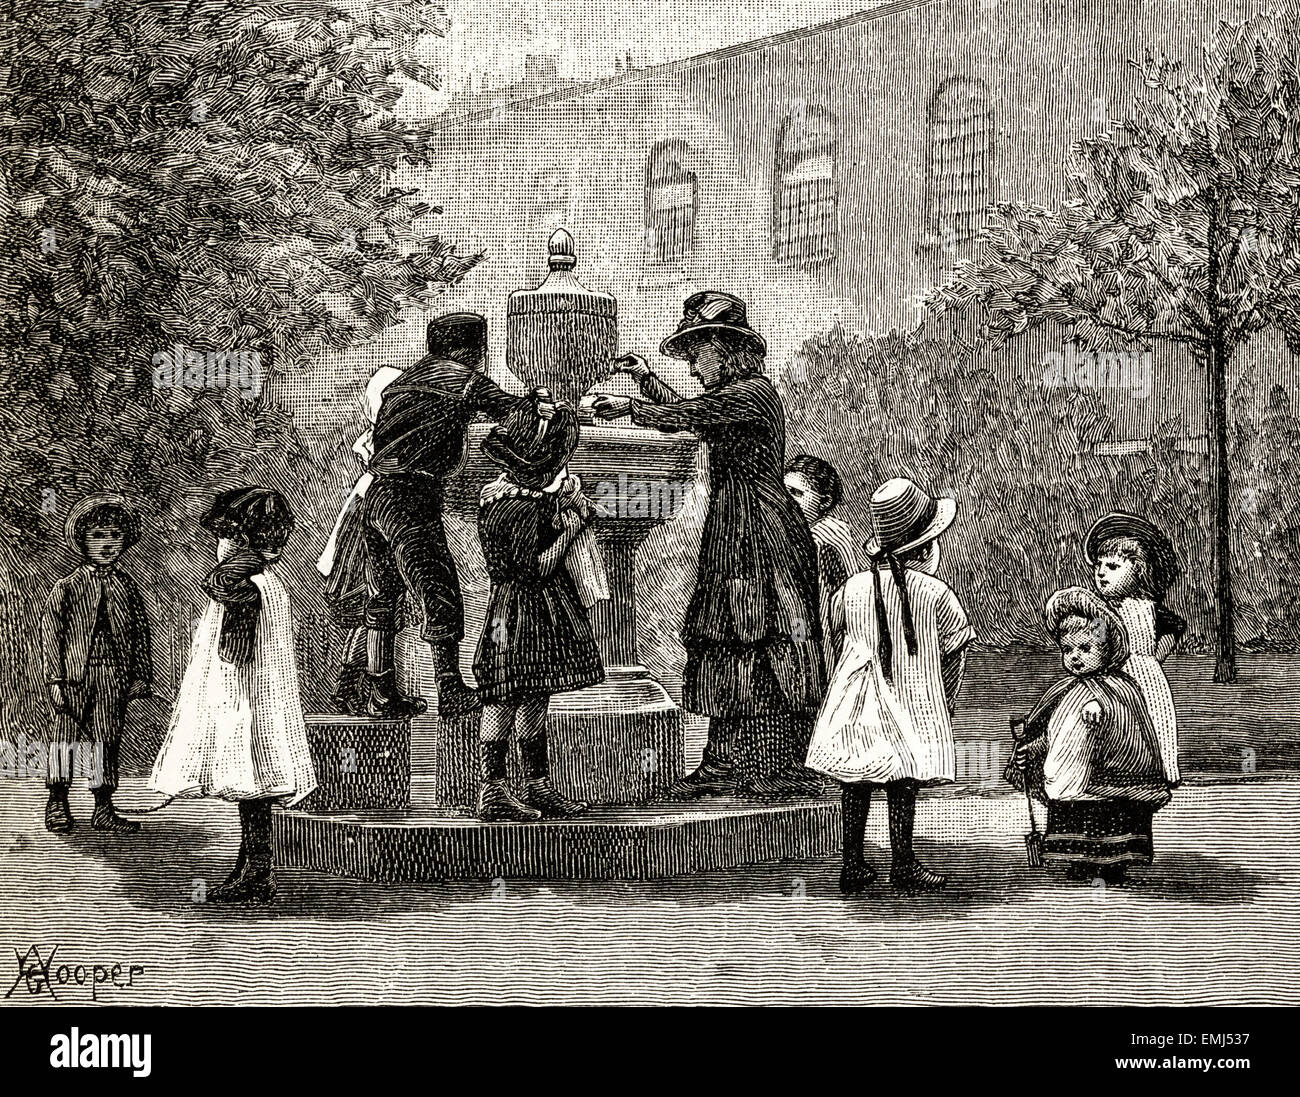 Children playing around a fountain. Victorian woodcut engraving dated 1890 - Stock Image